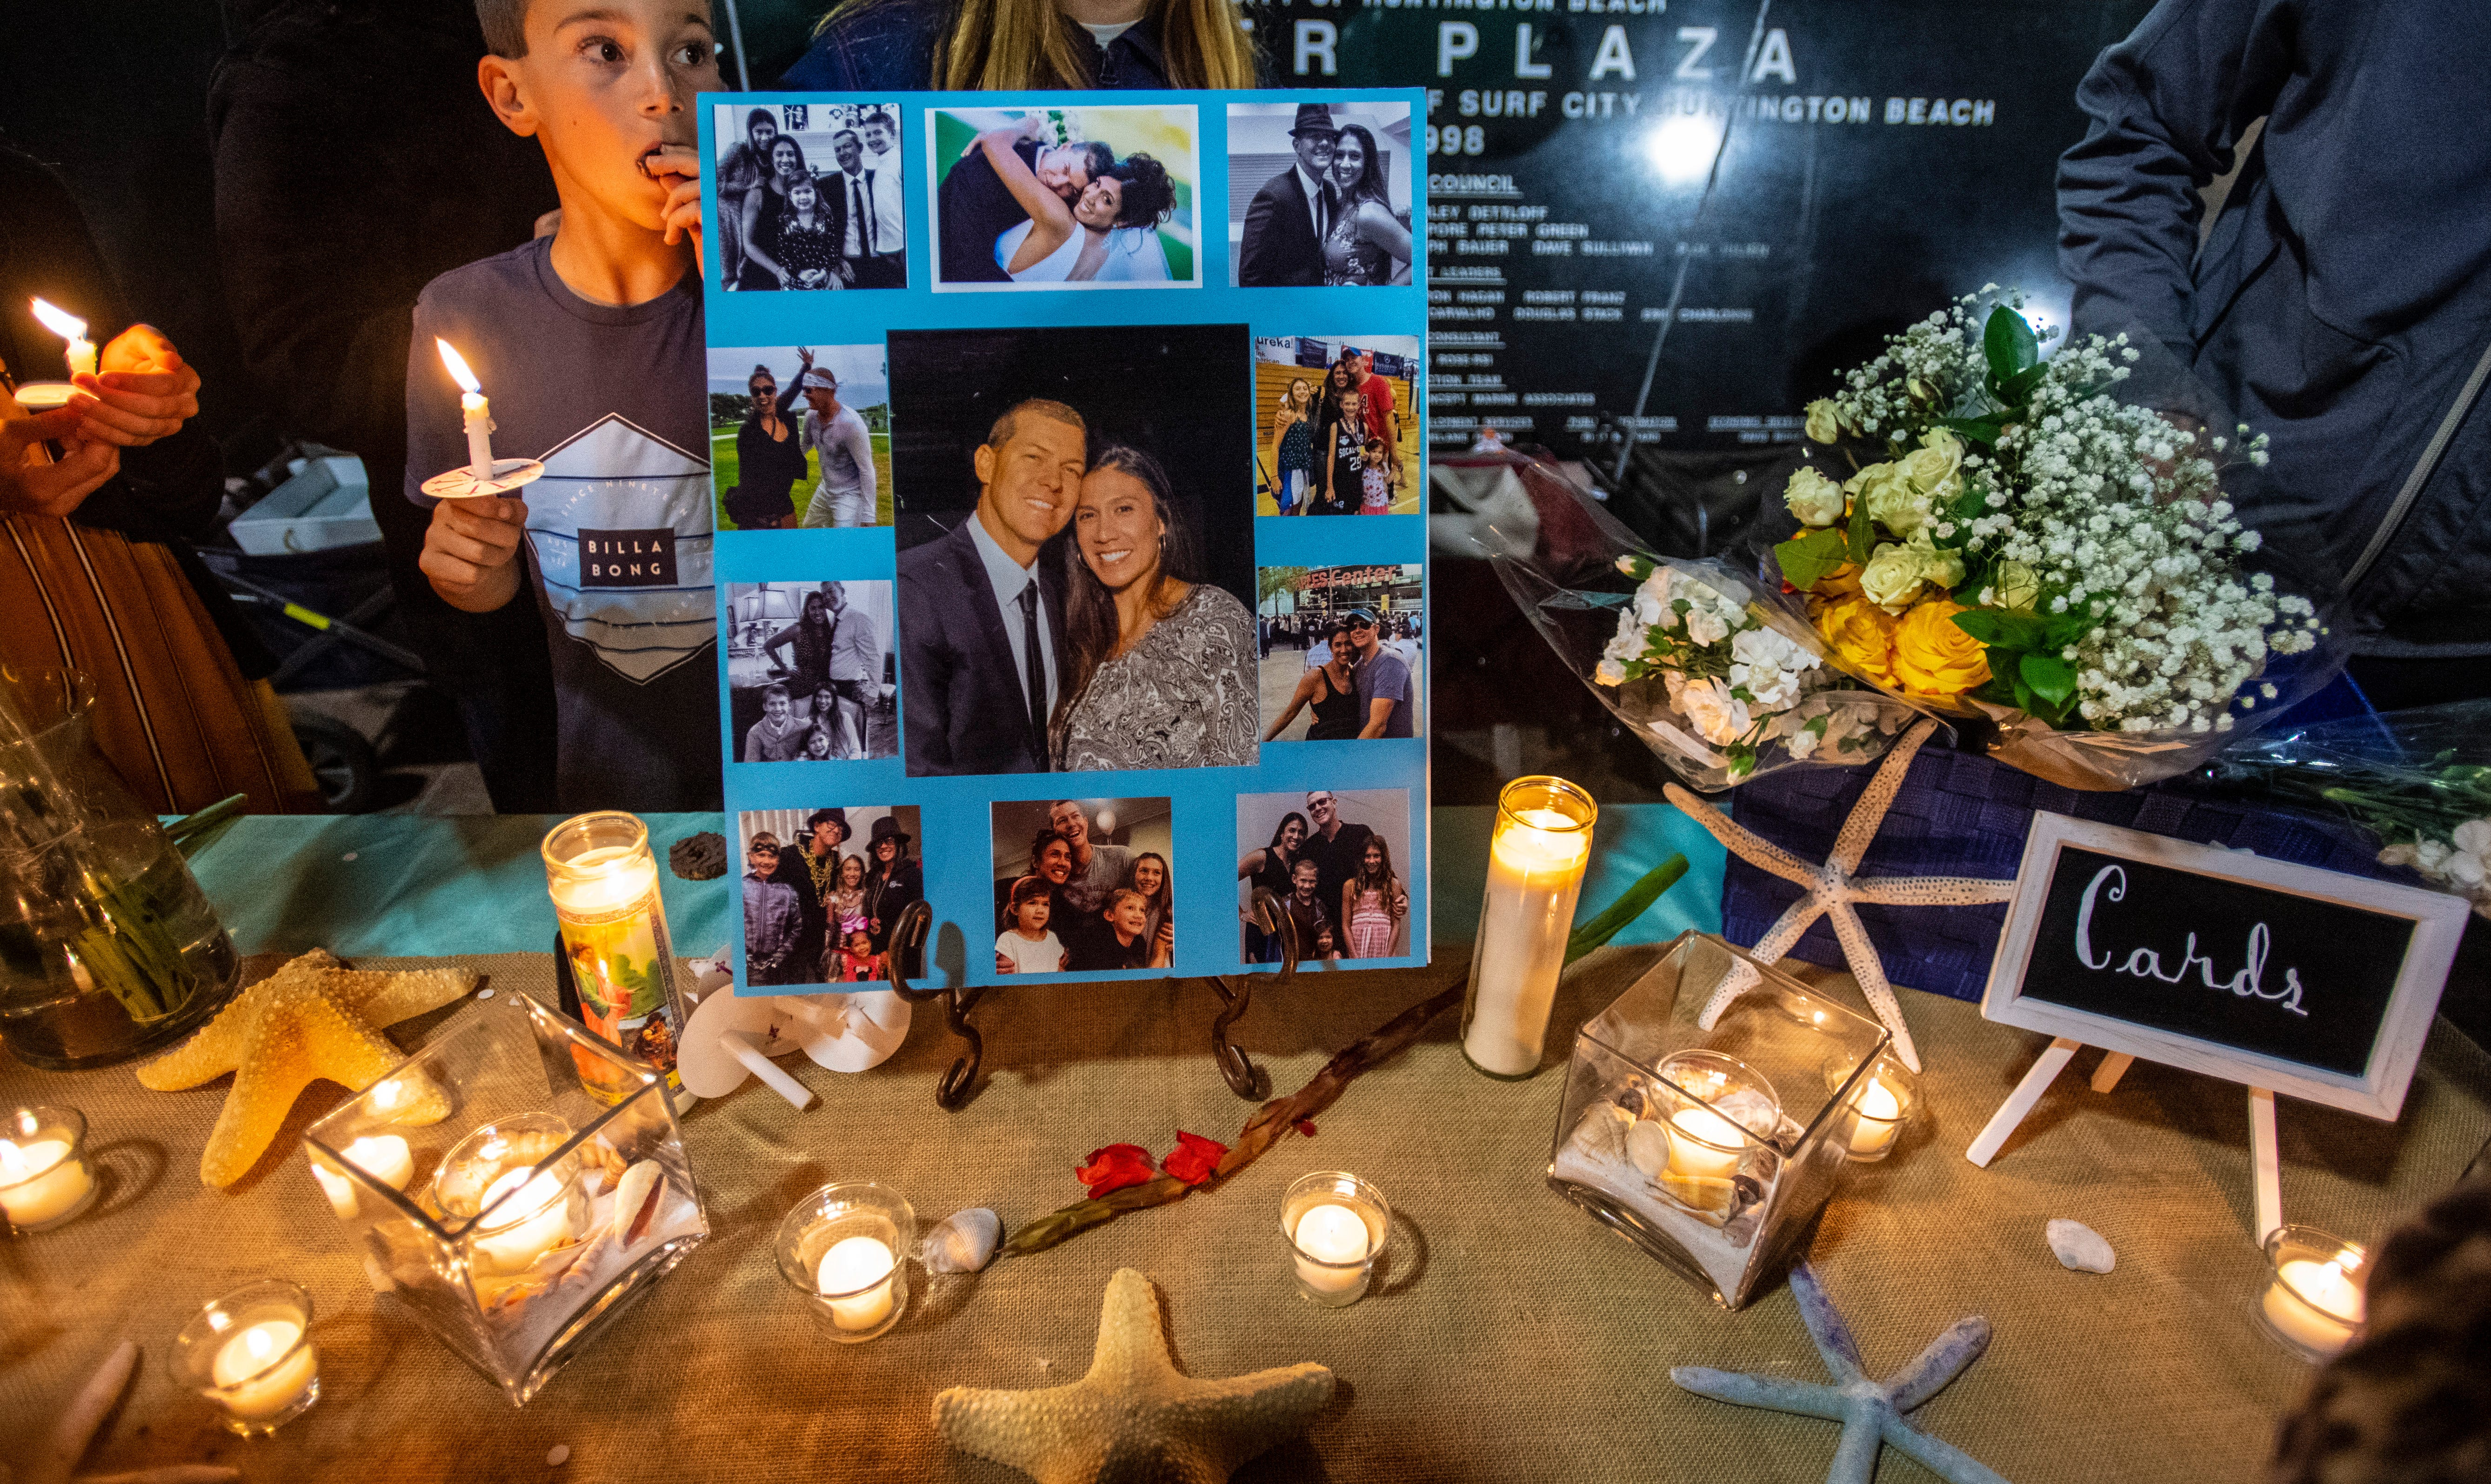 Photos of Christina Mauser are displayed for a vigil held the evening of Jan. 26 following a helicopter crash that killed her and eight others.